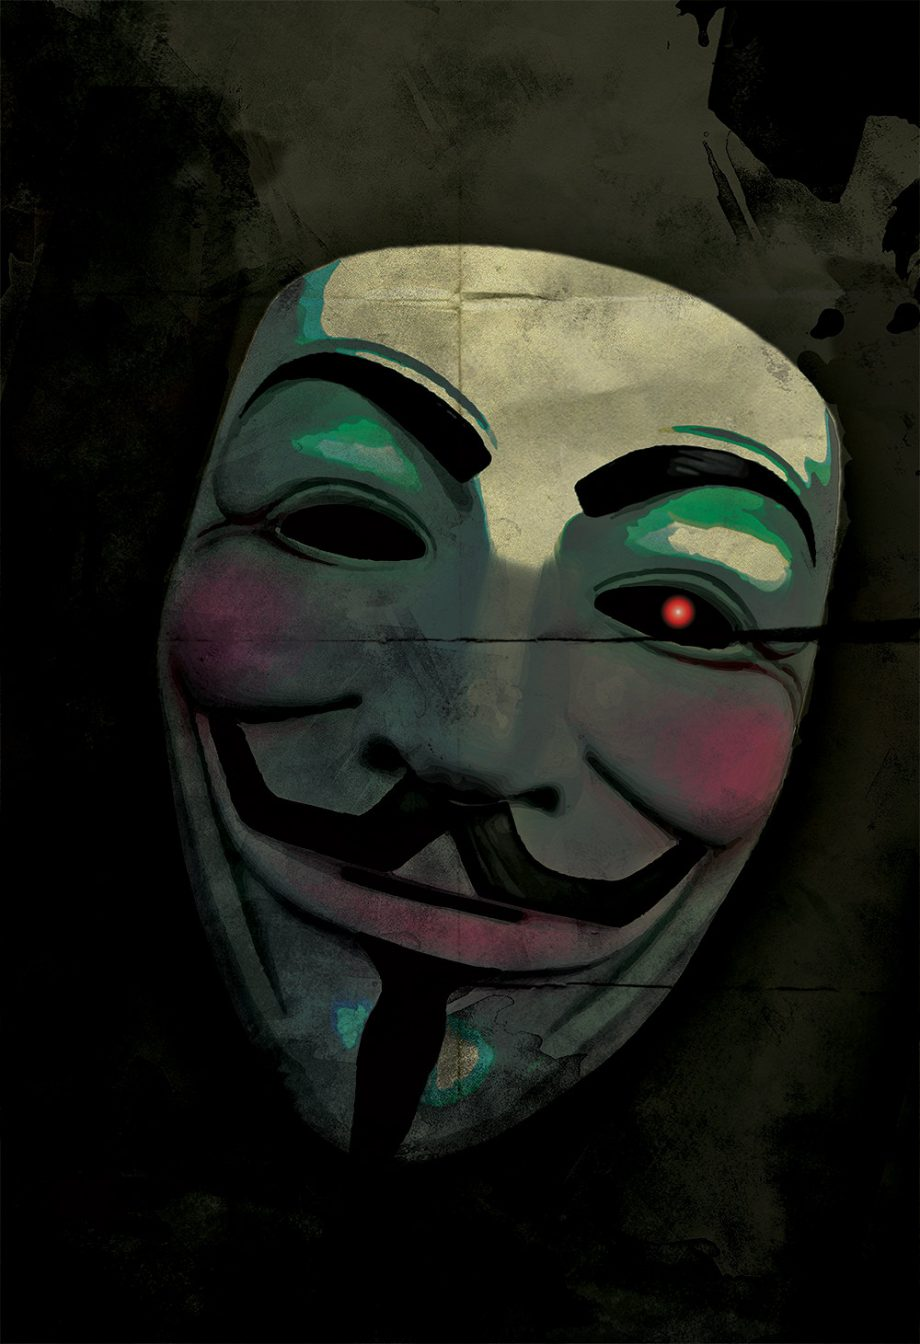 v-for-vendetta-movie-large-poster-guy-fawkes-mask-anonymous-print-giclee-on-satin-or-cotton-canvas-dystopia-5817aad22.jpg